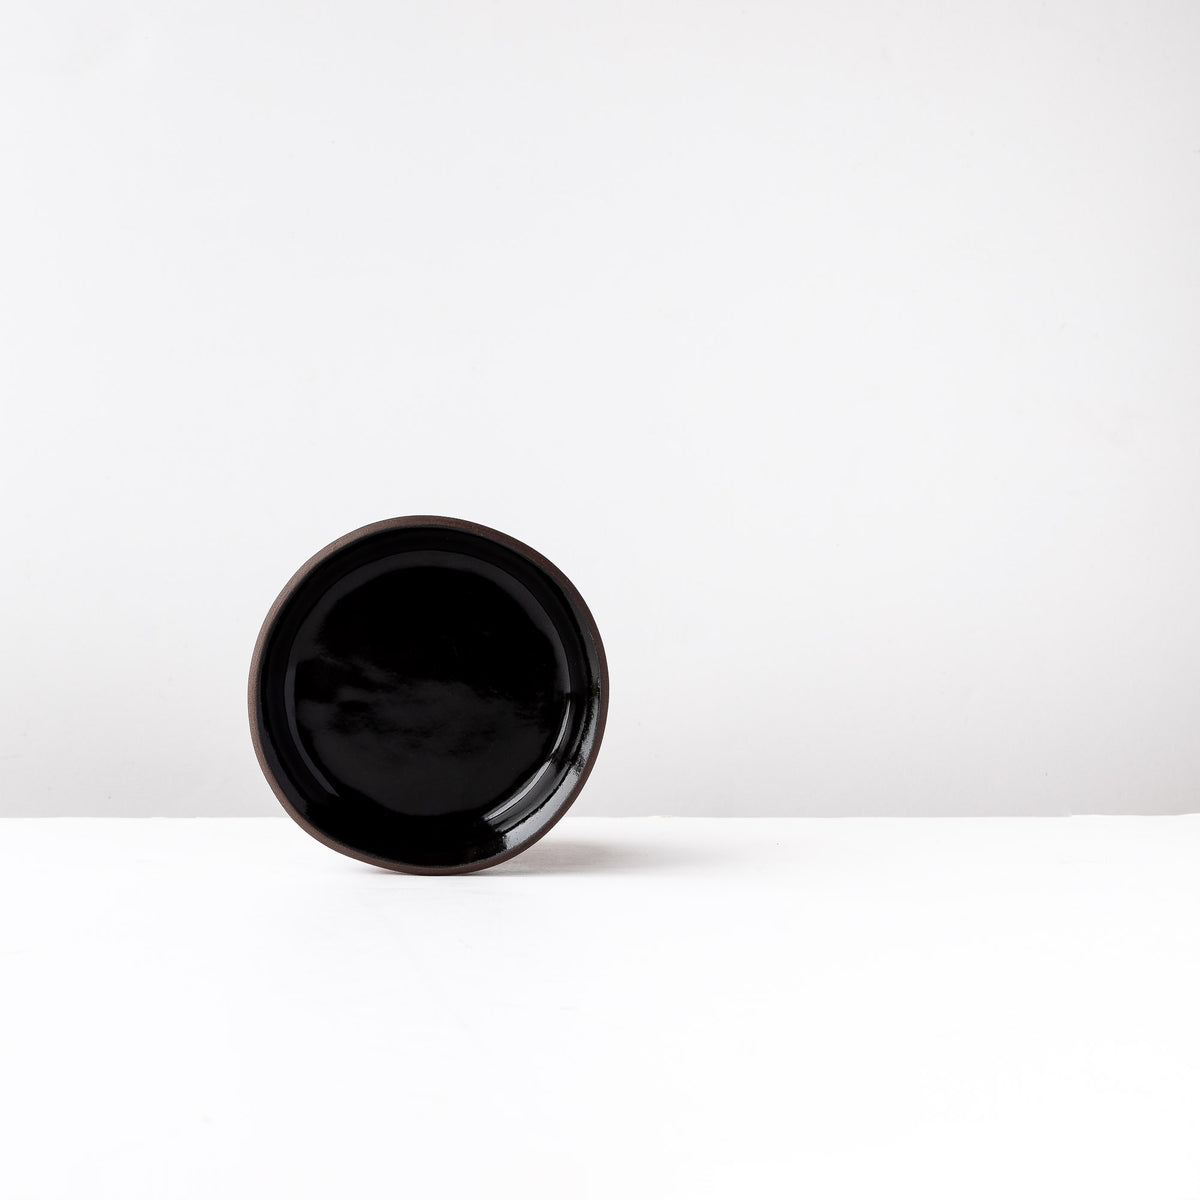 Small Handmade Saucer in Black Lacquered Stoneware - Sold by Chic & Basta